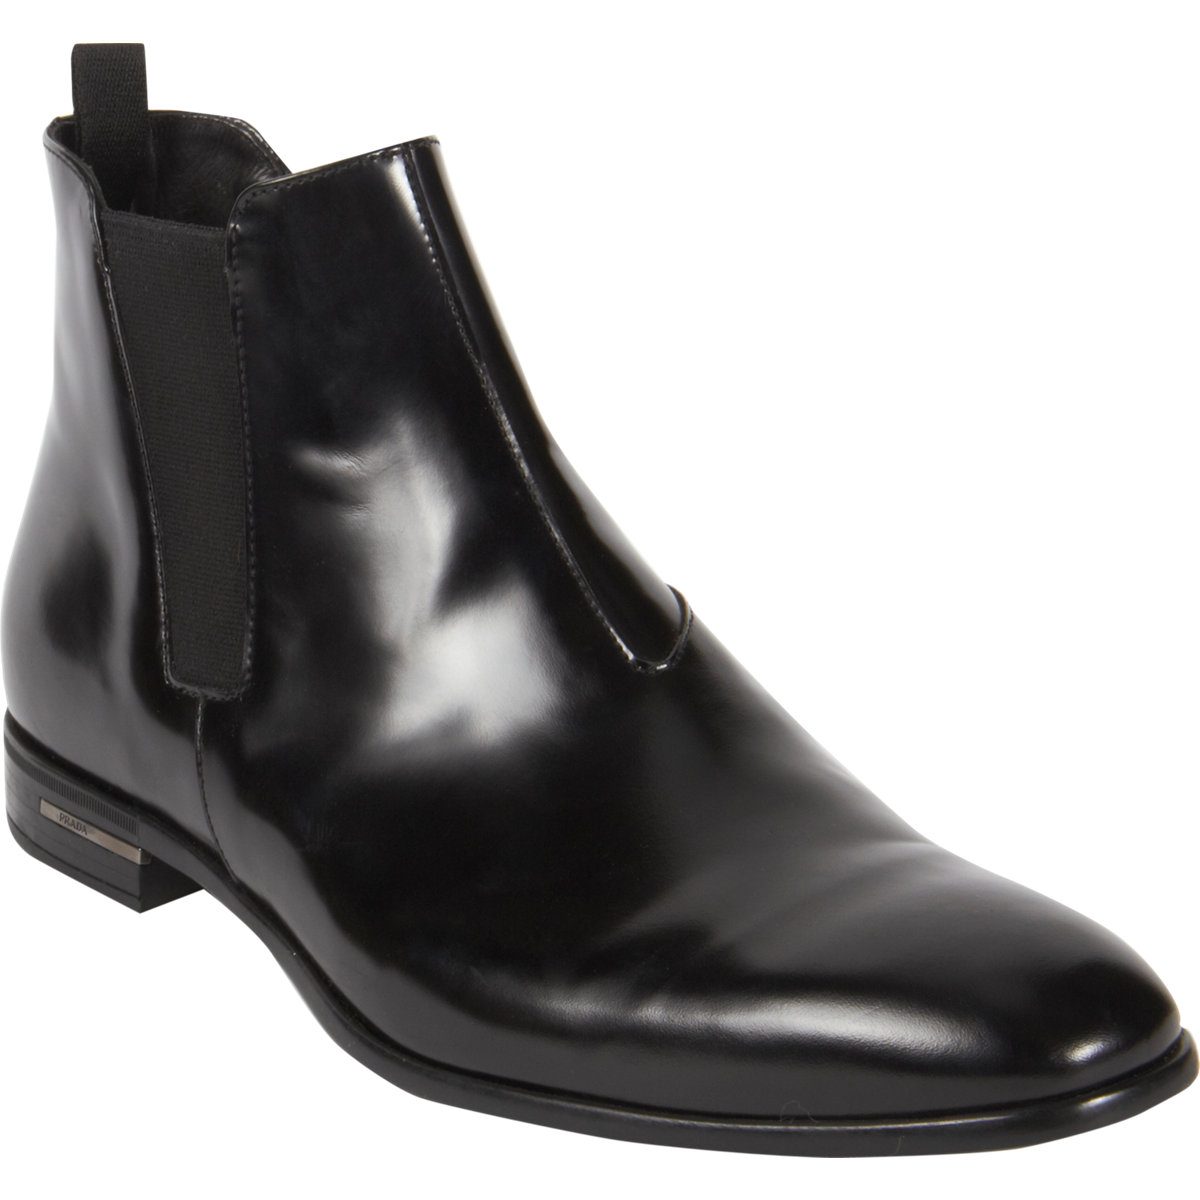 prada chelsea boot in black for men lyst. Black Bedroom Furniture Sets. Home Design Ideas